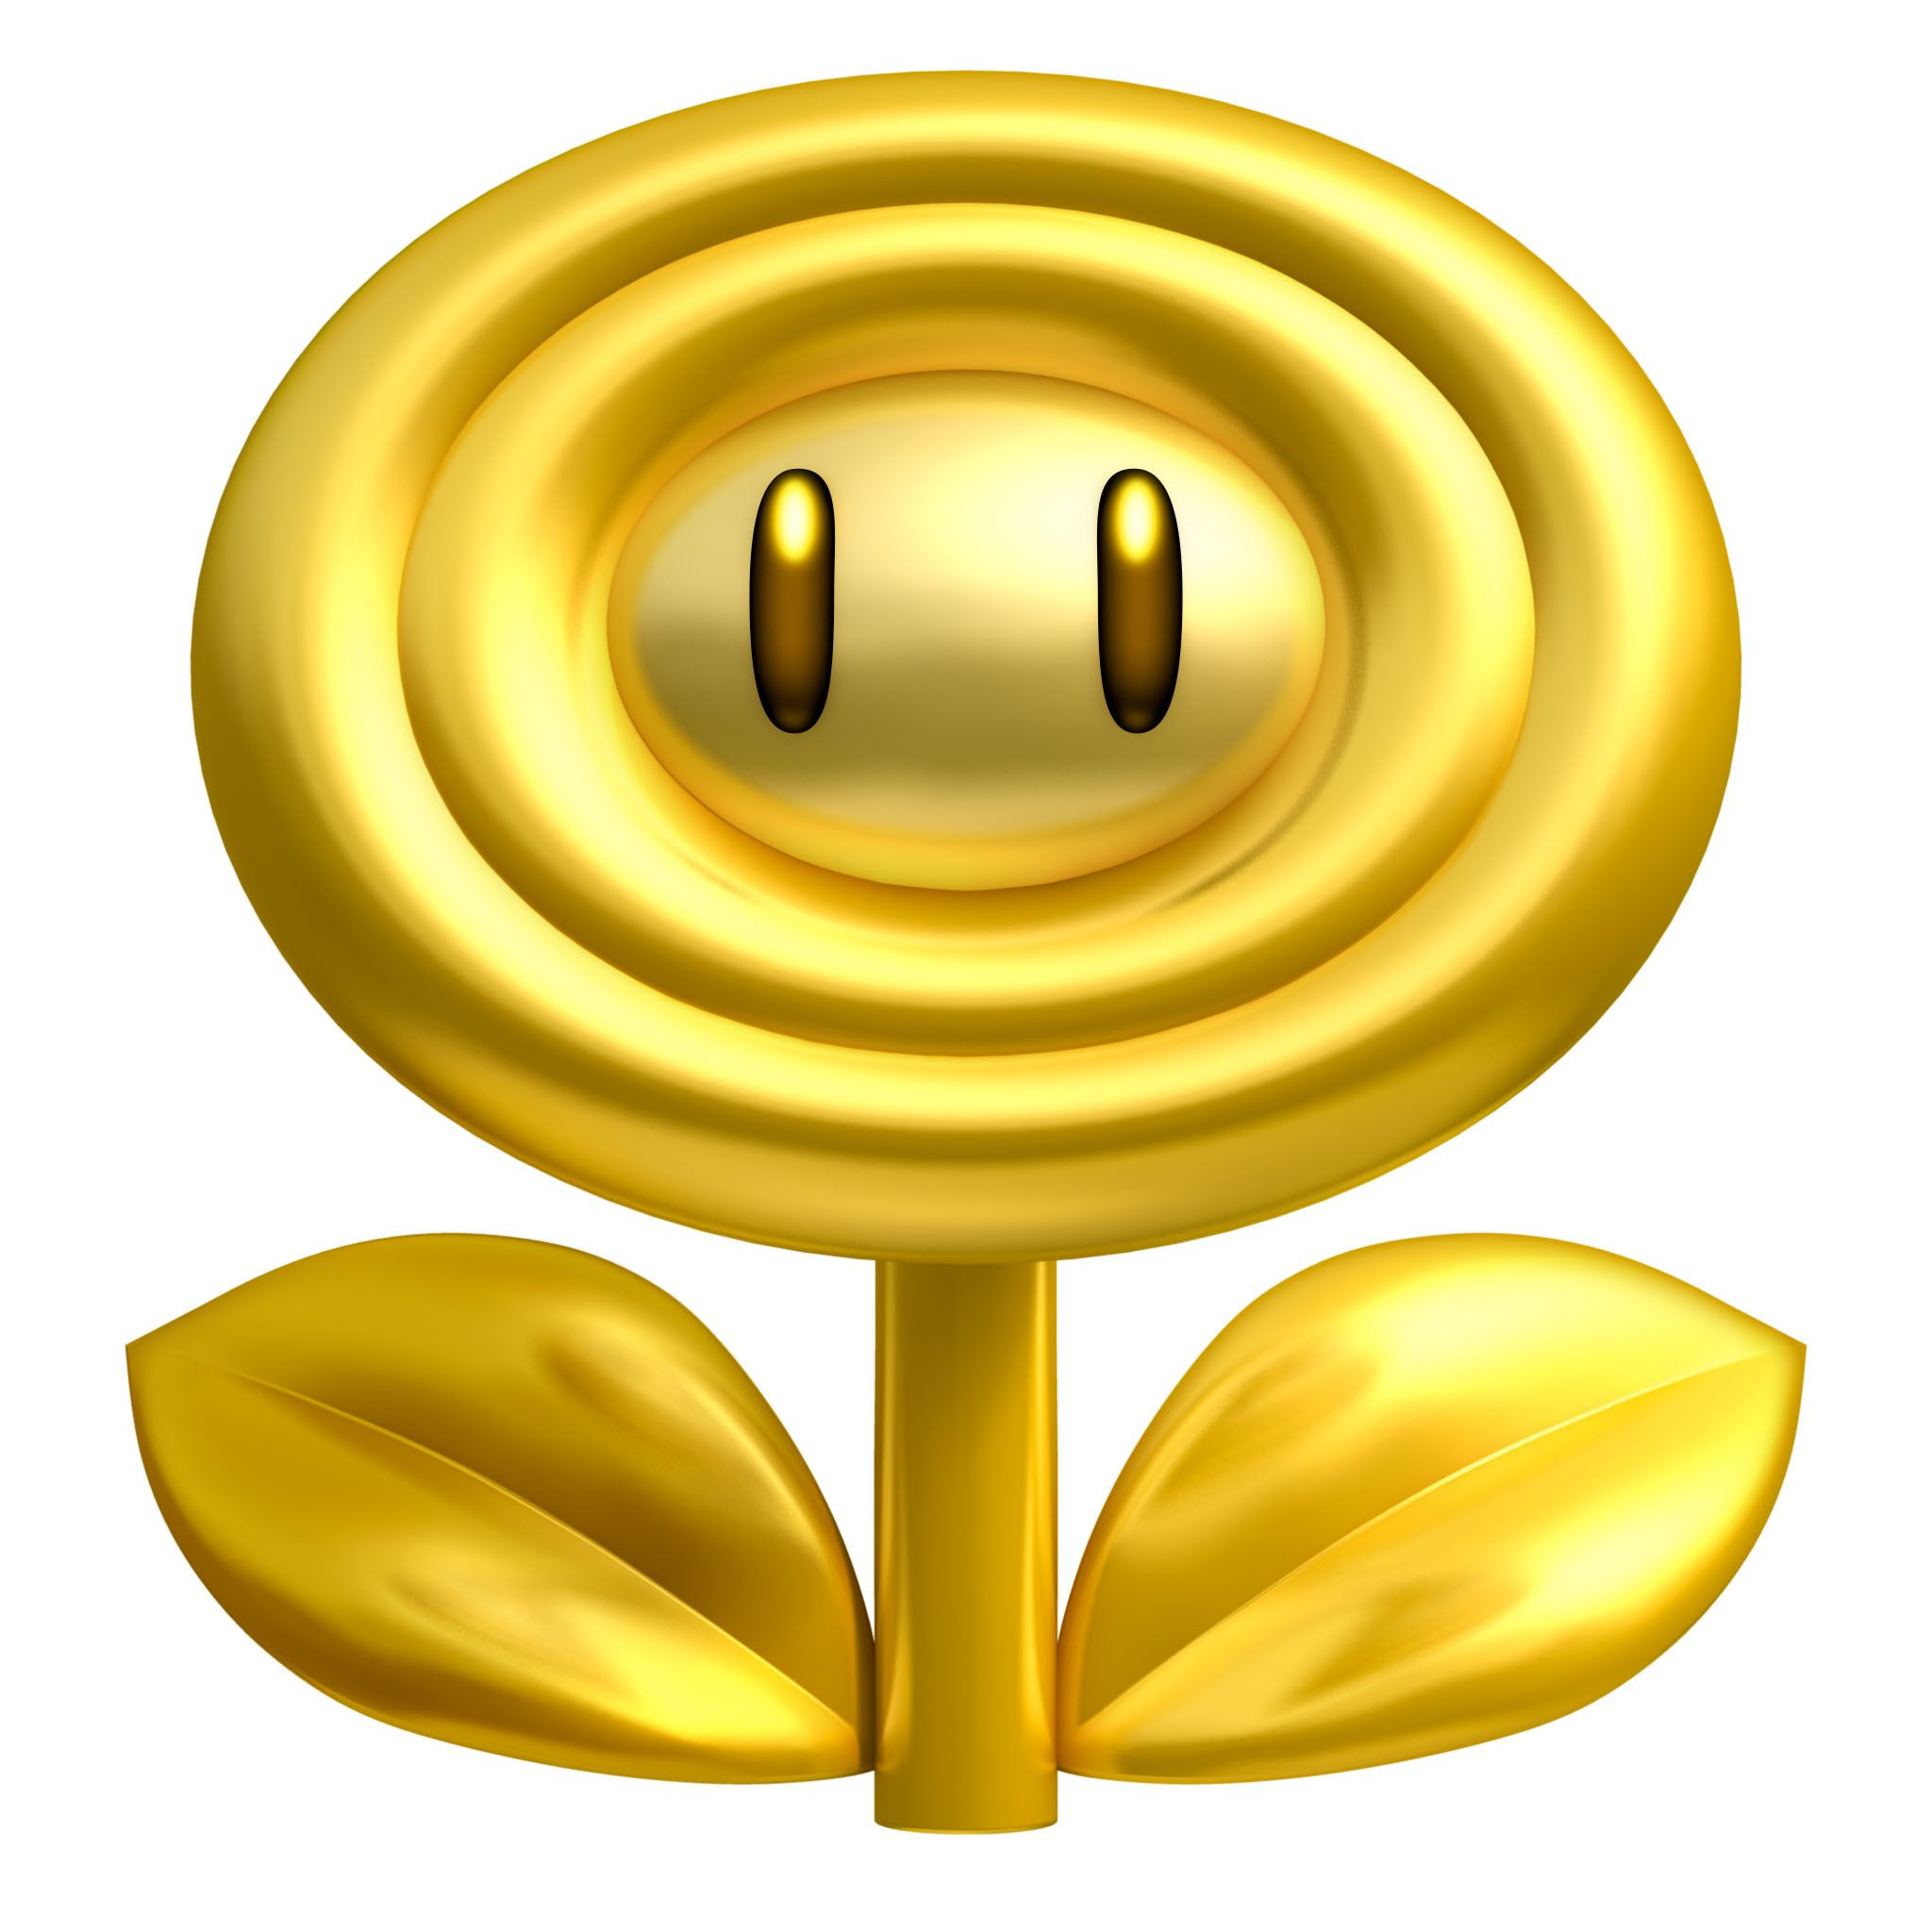 gold stuff | 23_n3ds_new-super-mario-bros-2_artwork_items_04 | Goud ...